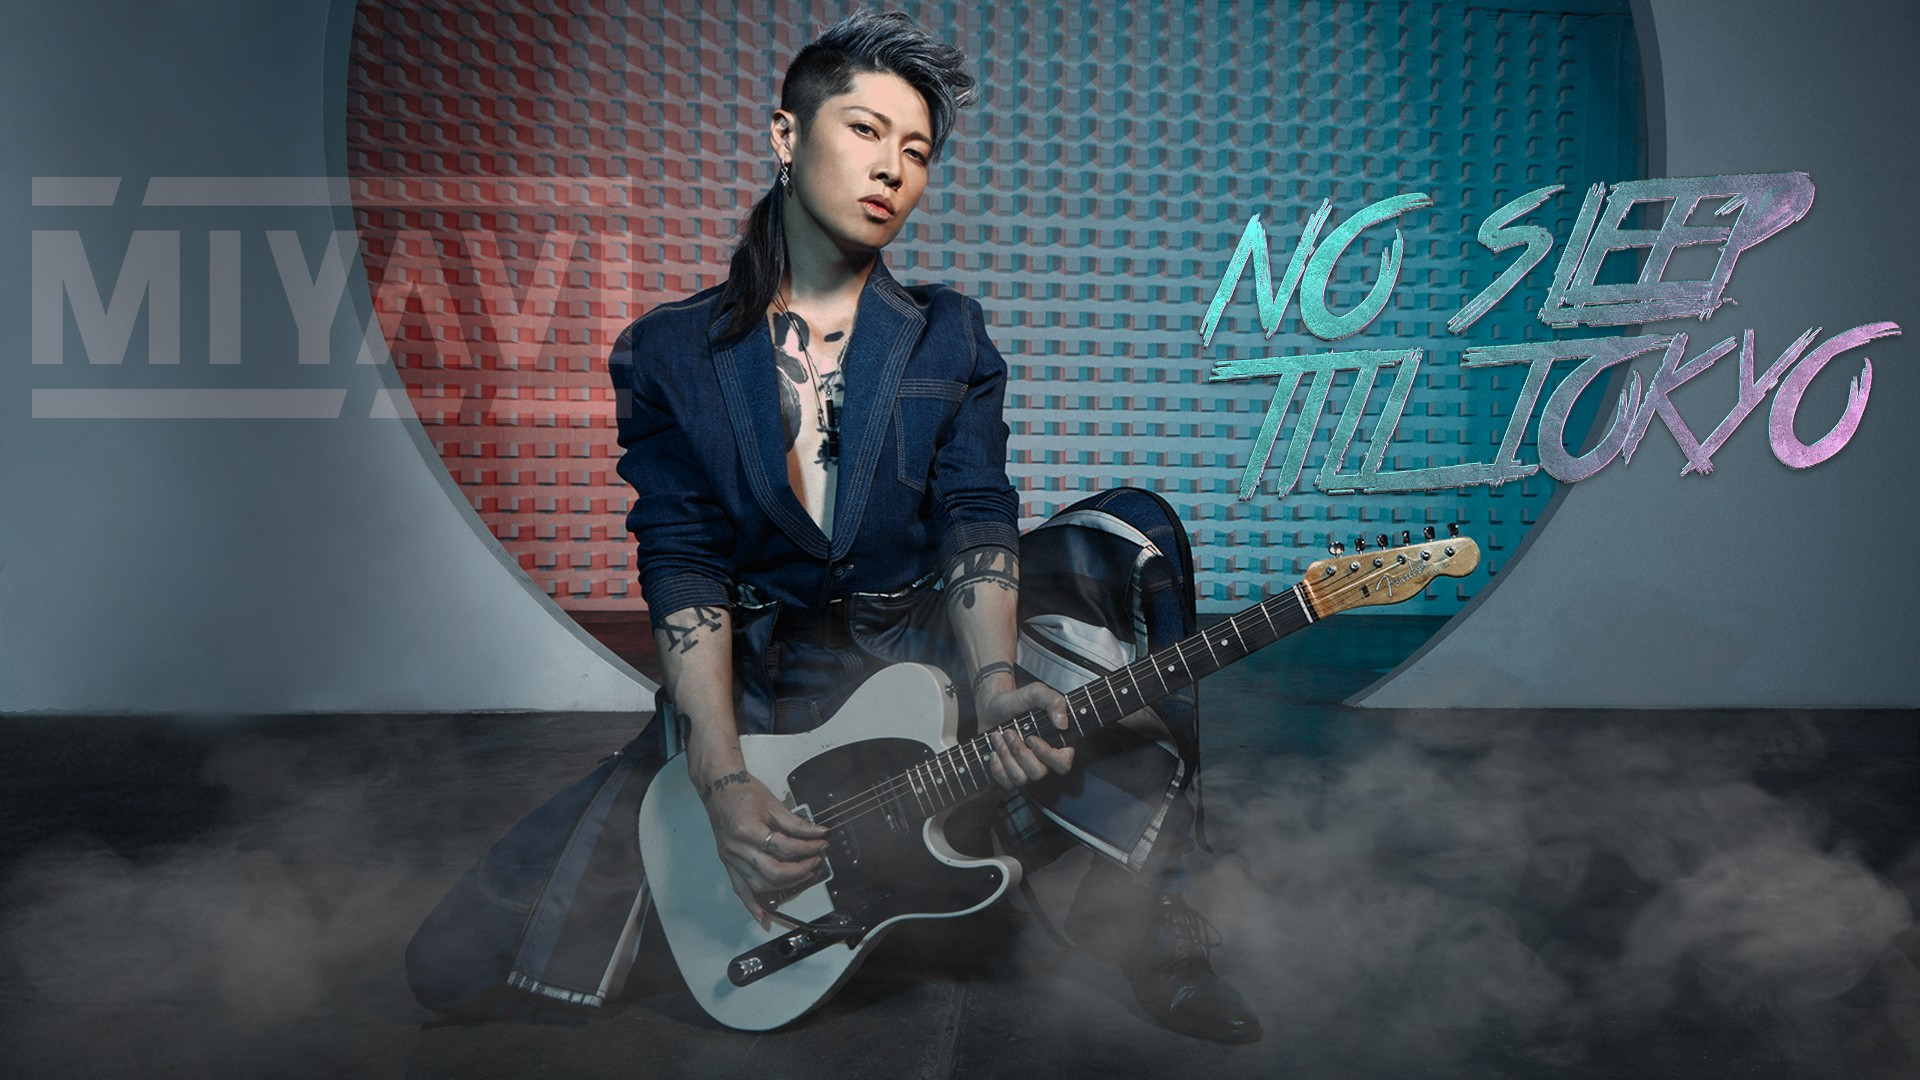 miyavi_tour_announcement_1920x1080.jpg